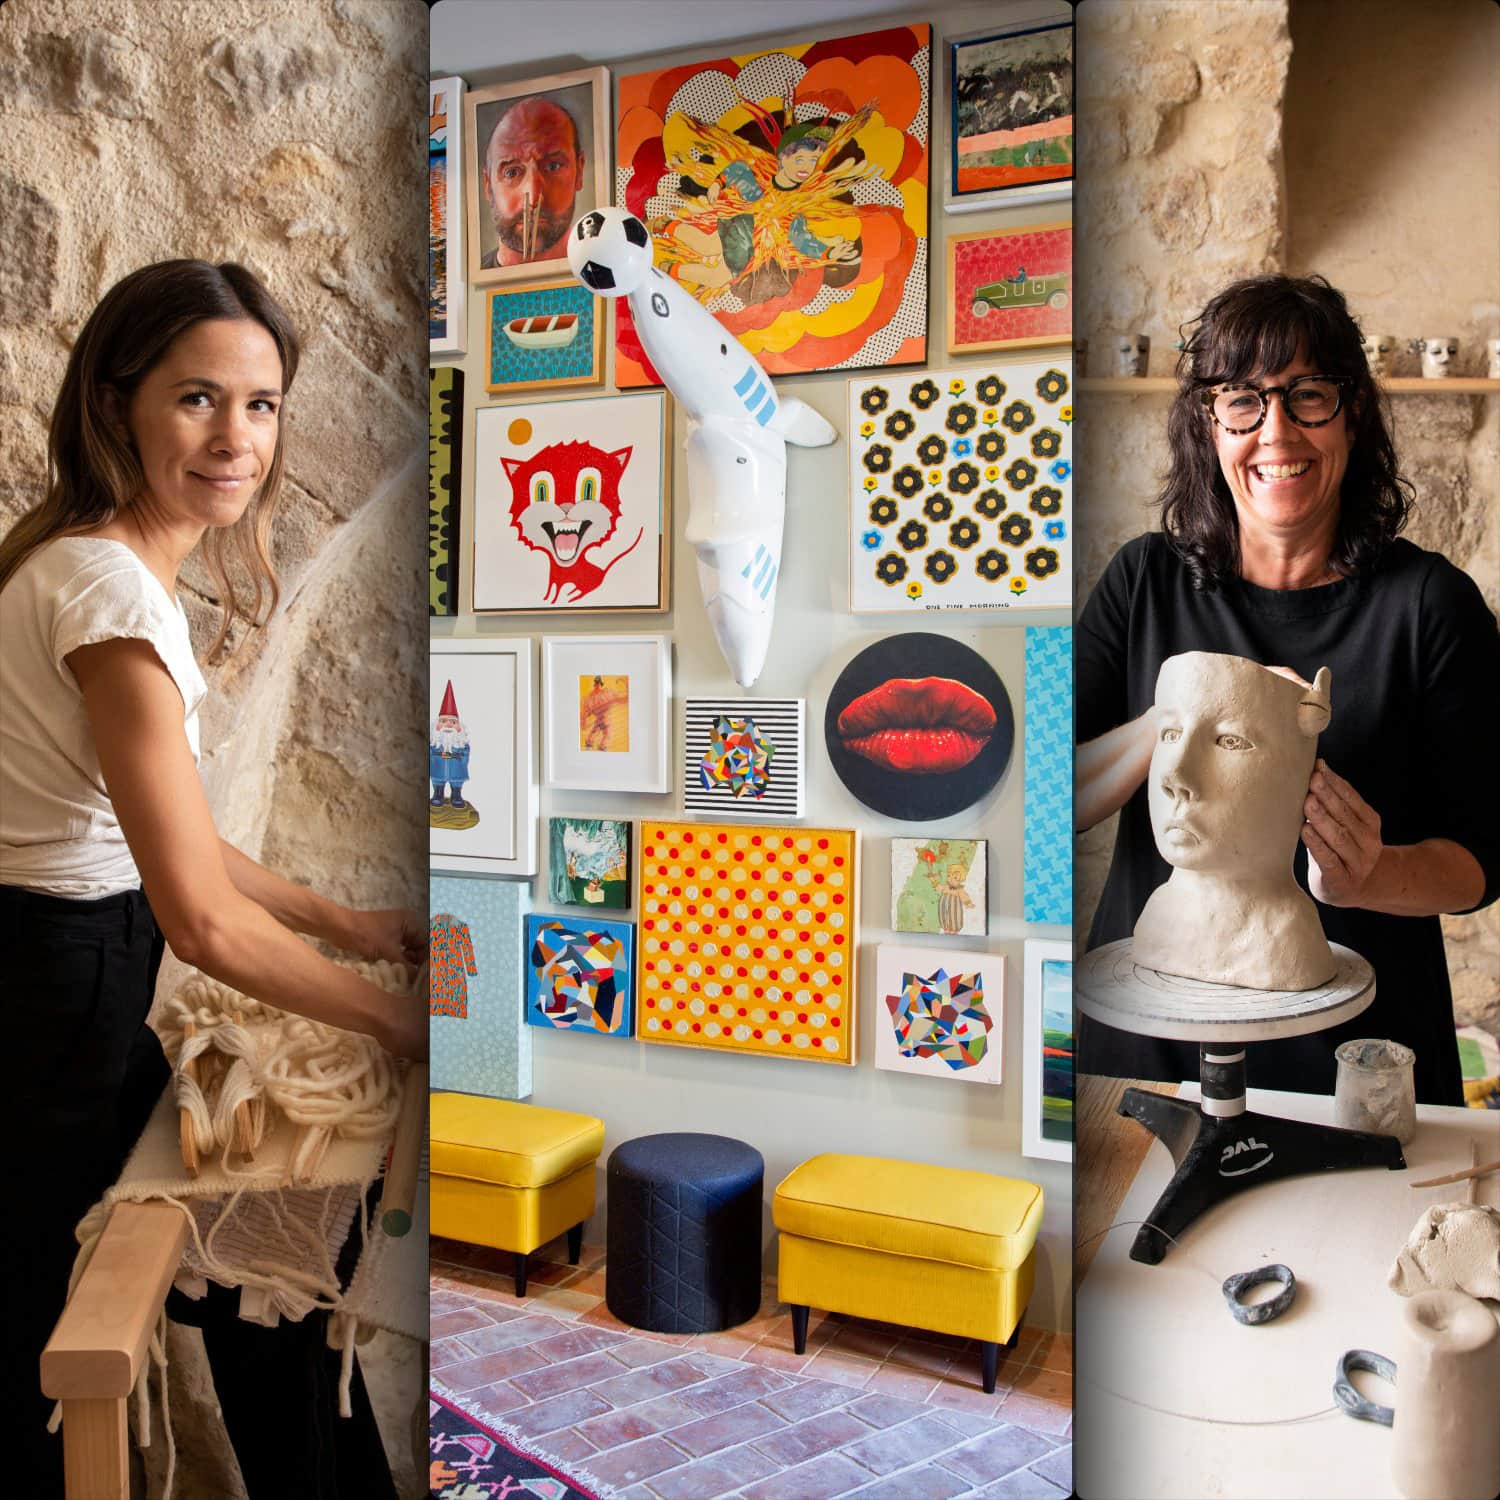 SCAD Lacoste - the University for creative careers by RUNWAY MAGAZINE